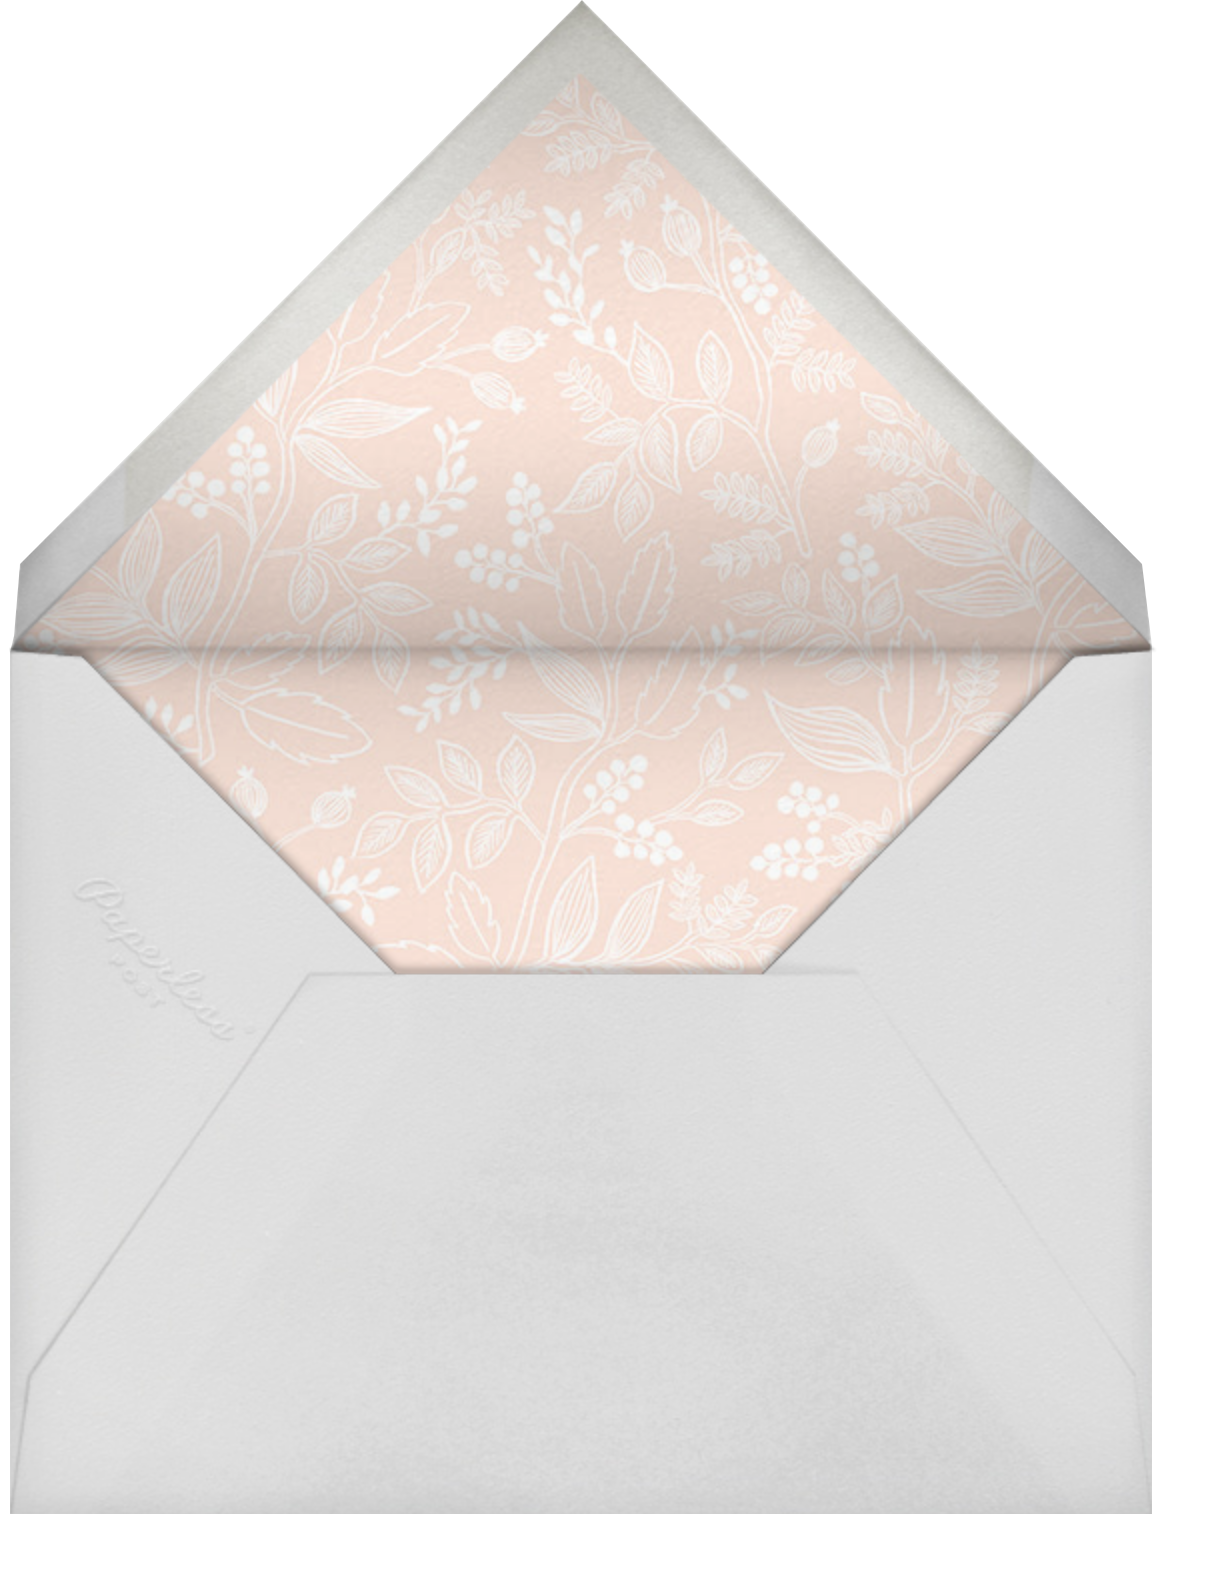 Queen Anne (Square) - Rifle Paper Co. - Printable invitations - envelope back